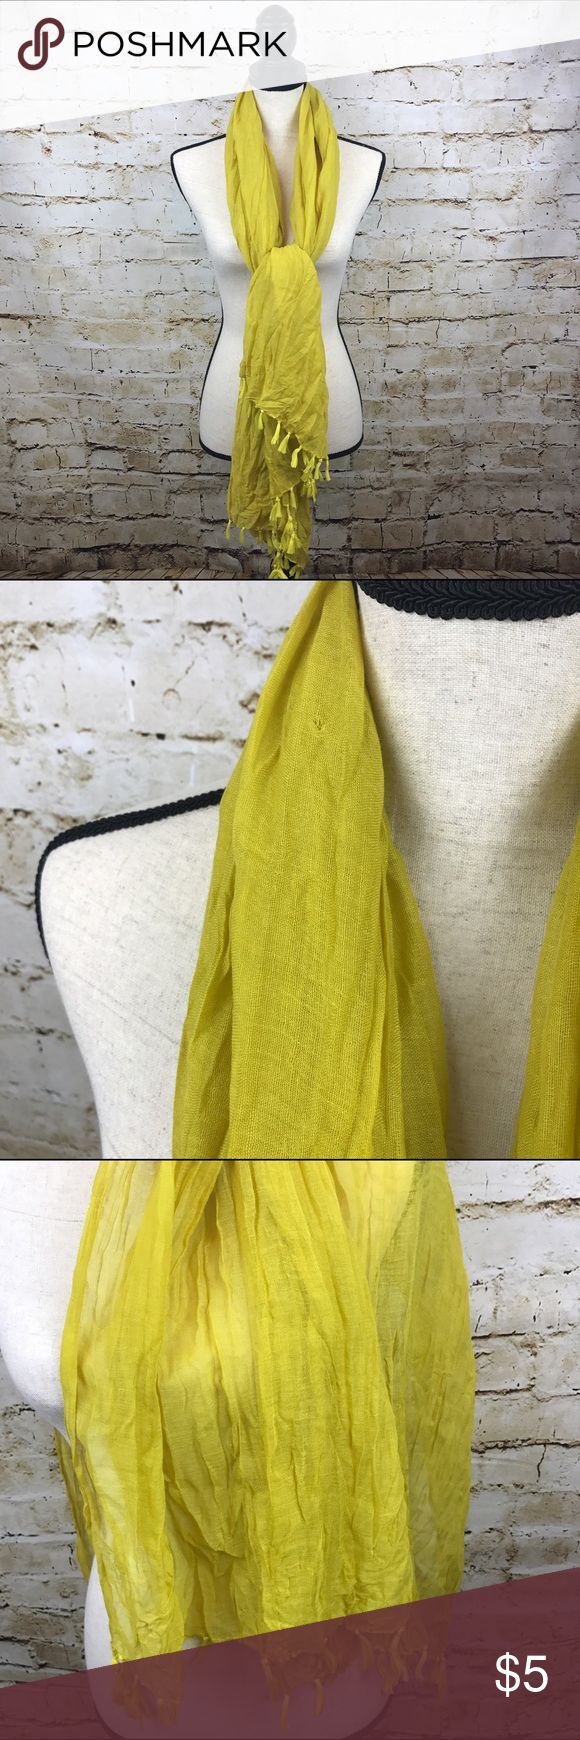 Target Brand Textured Tassle Scarf Like new Target brand textured tassle scarf in golden yellow. Target Accessories Scarves & Wraps